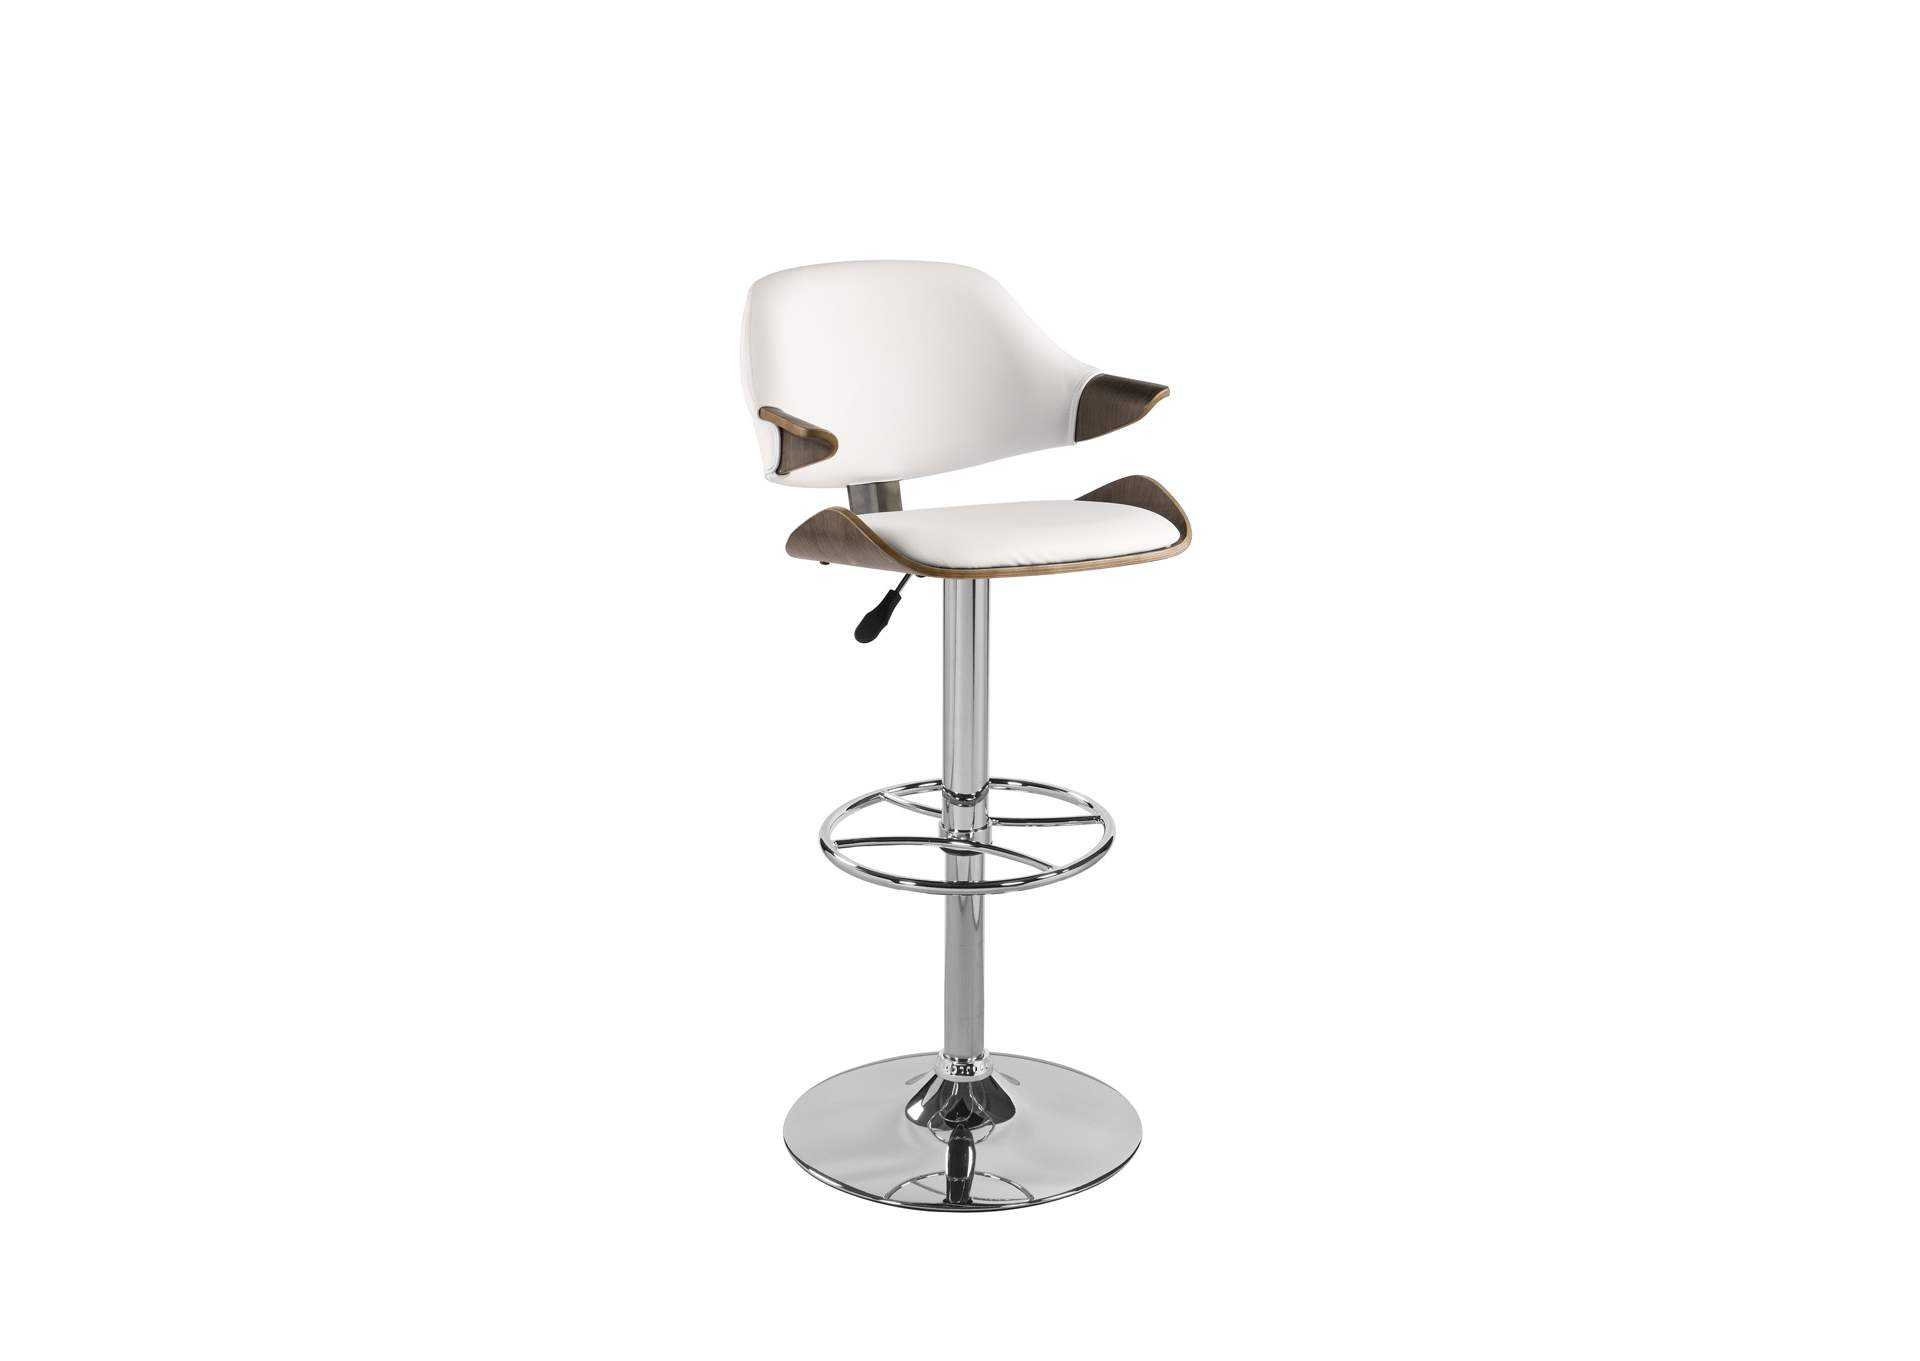 Chrome & Oak Curved Back Adjustable Height Stool,Chintaly Imports